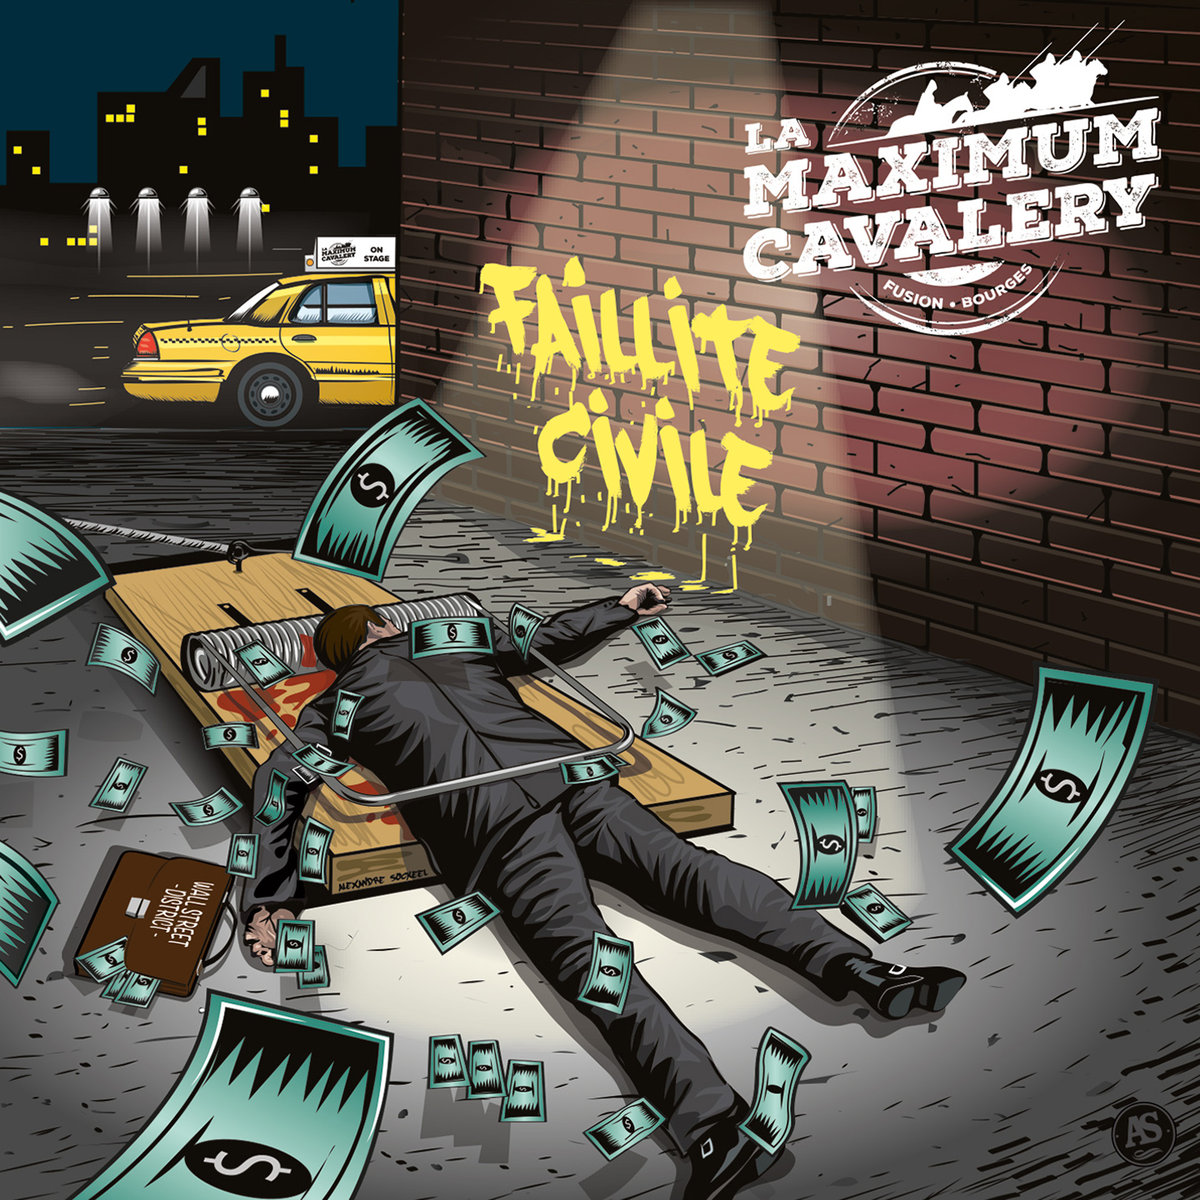 Review : La Maximum Cavalery - Faillite Civile()